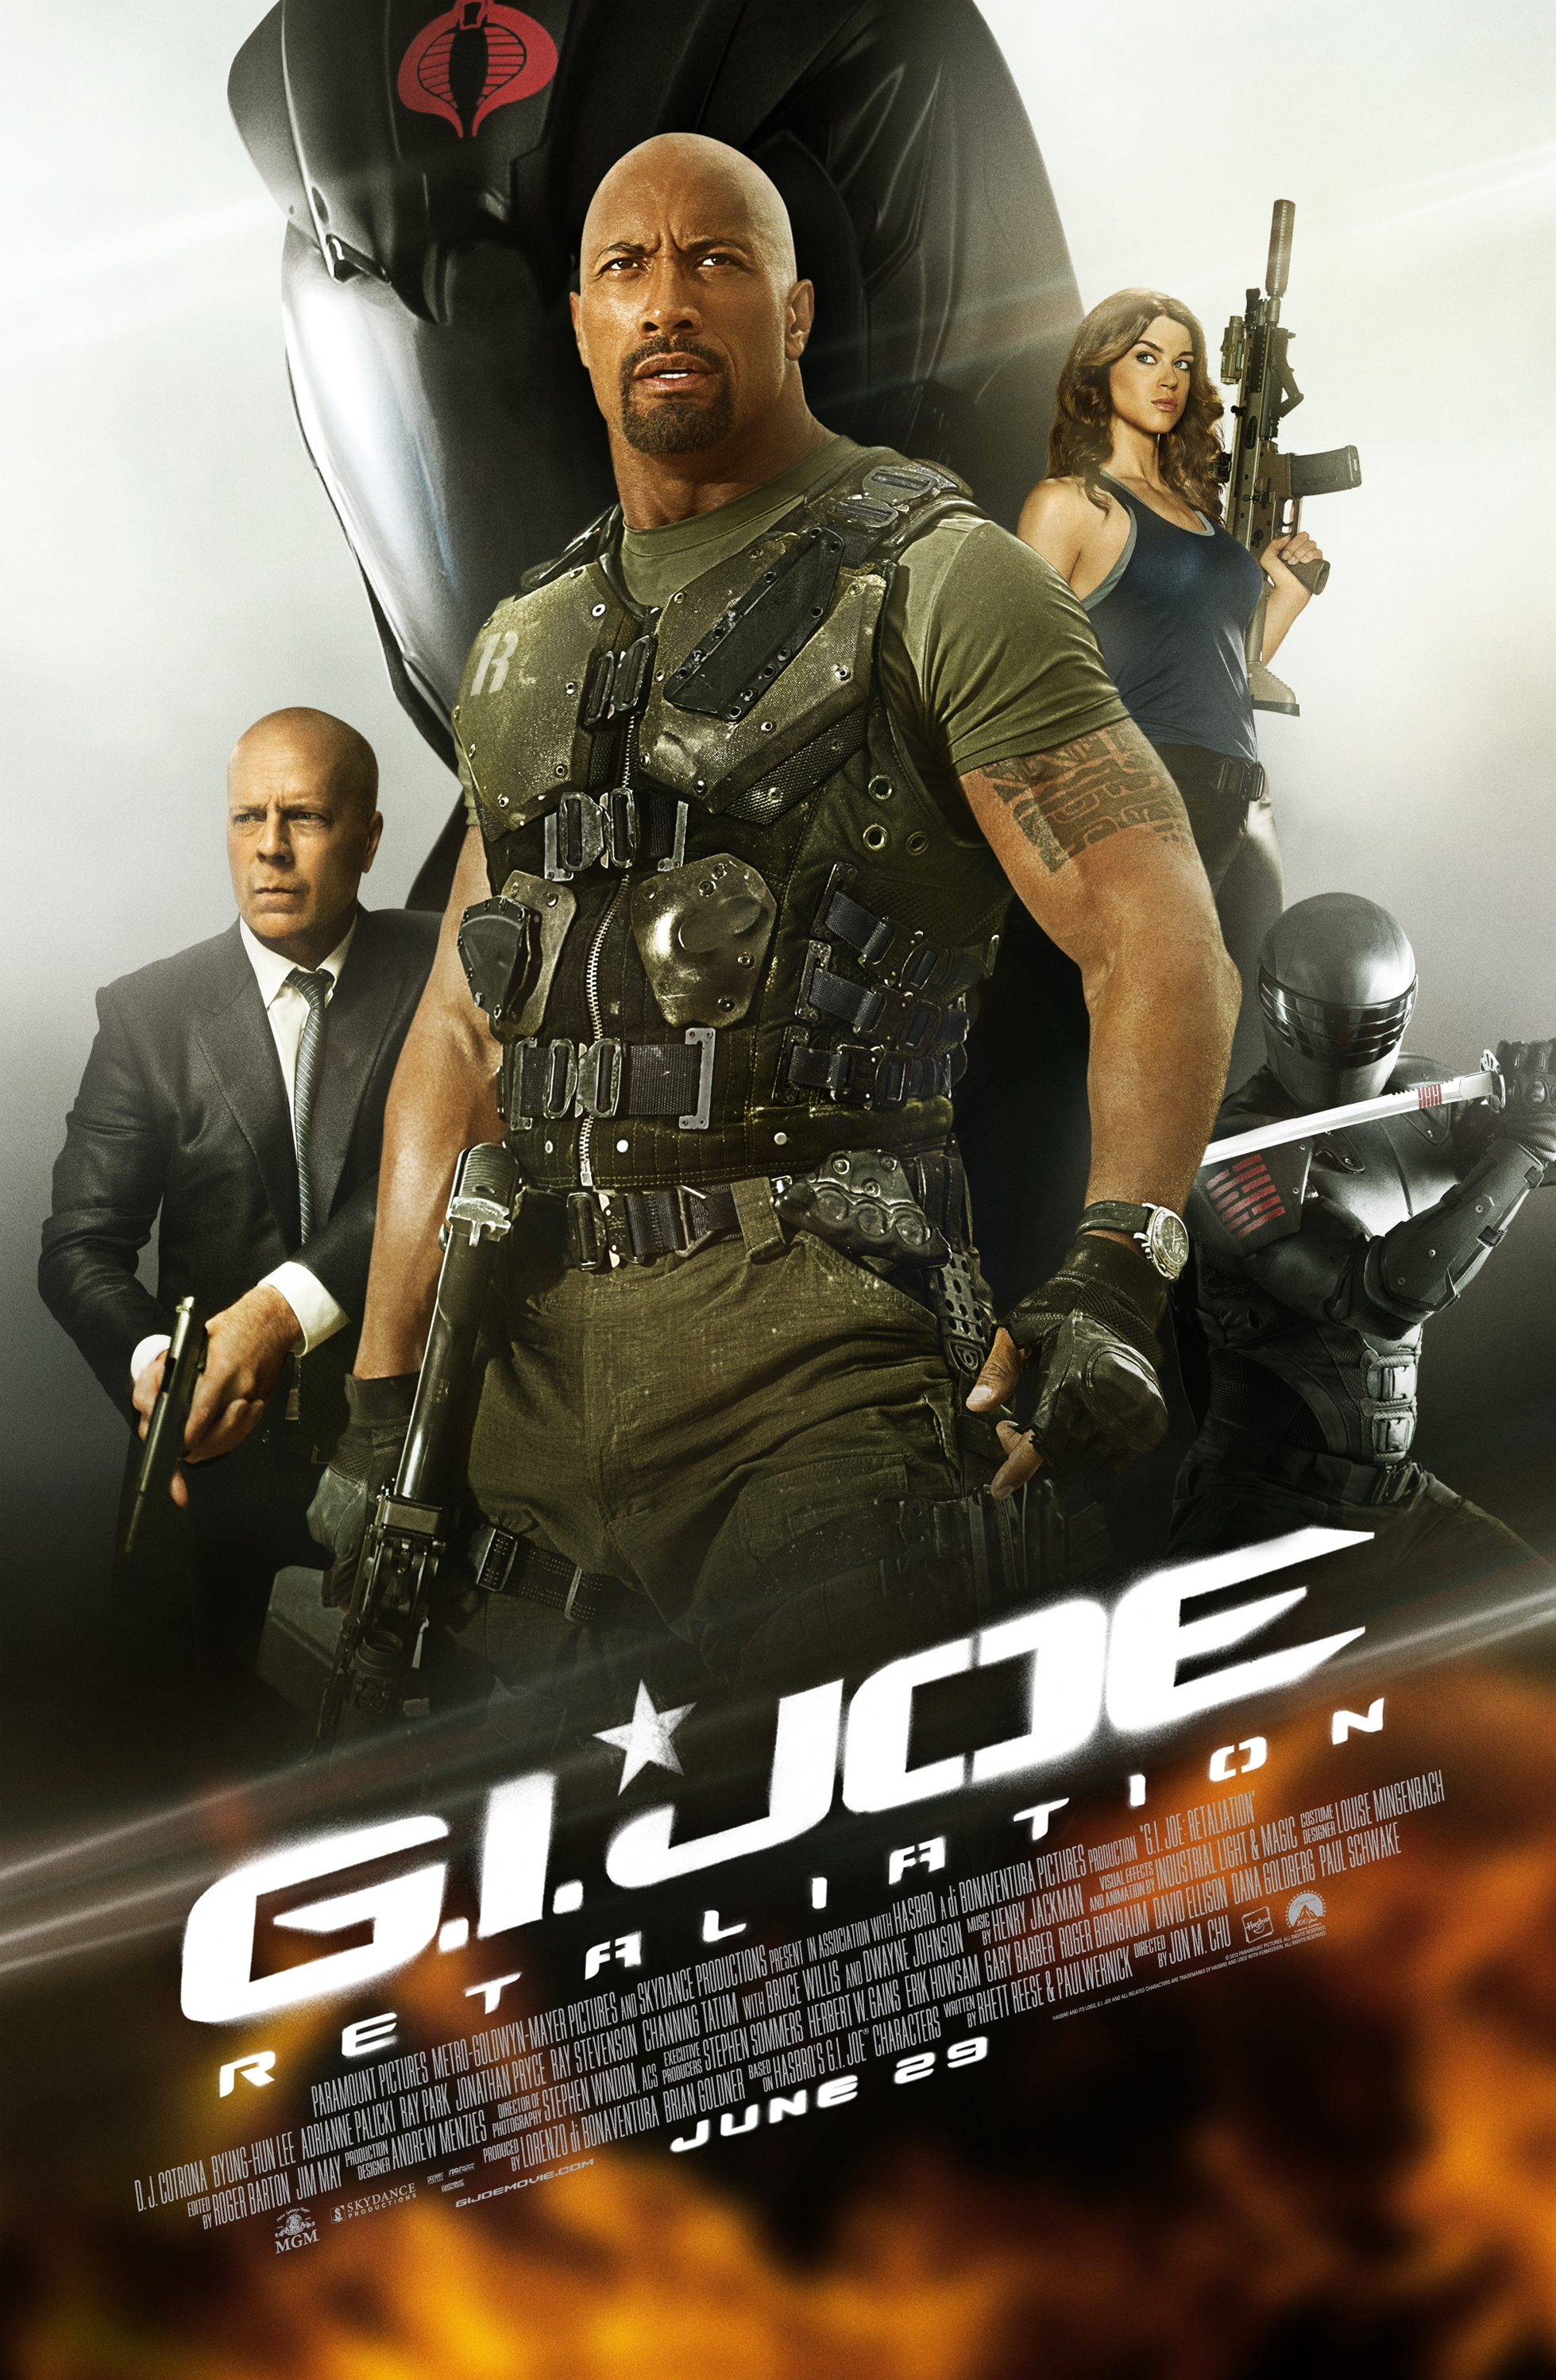 96351336754557 gijoe2 payoff 1sht online Four New Videos From G.I. Joe: Retaliation Show Tons Of Action